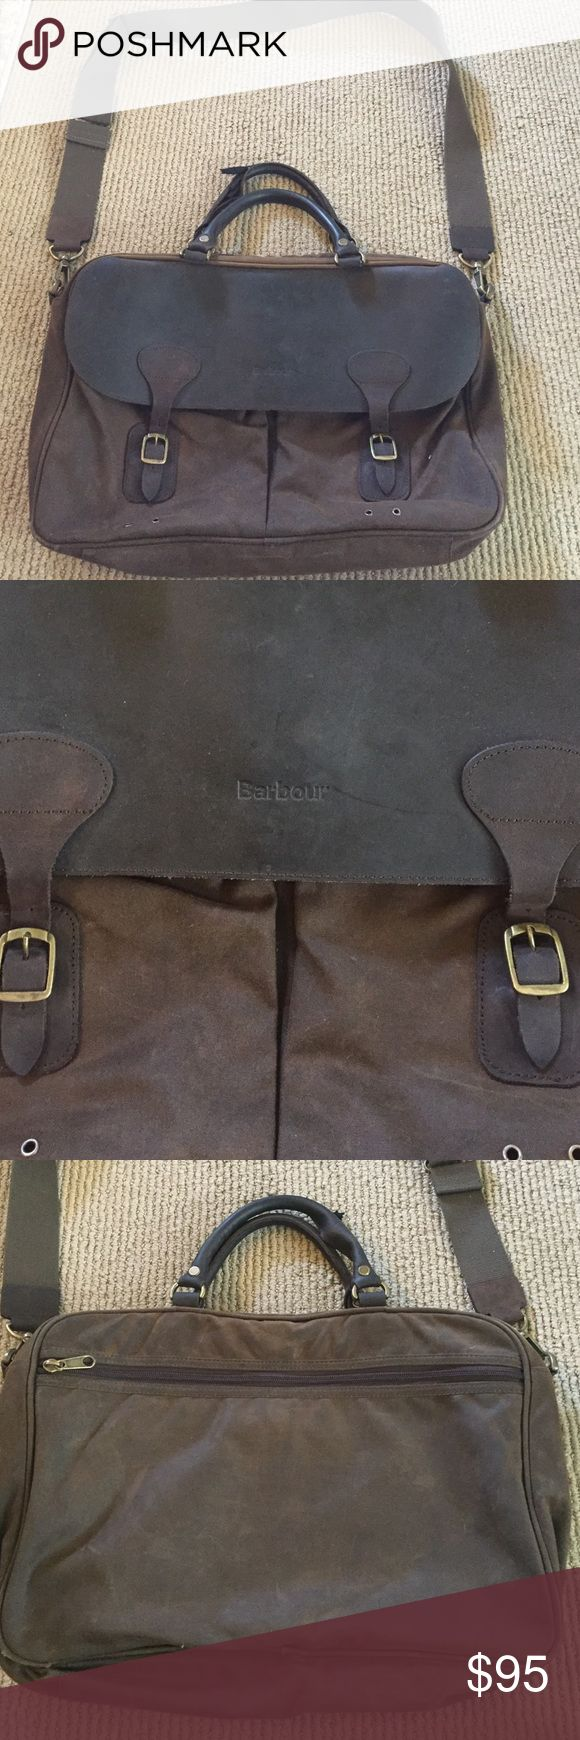 Barbour Briefcase with Shoulder Strap. Barbour Briefcase with Shoulder Strap. Brown/Olive Green. Canvas shoulder strap. Minor wear and tear. One handle is worn and needs some TLC. Two front pockets. One back outside zip closure pocket. Barbour Bags Briefcases